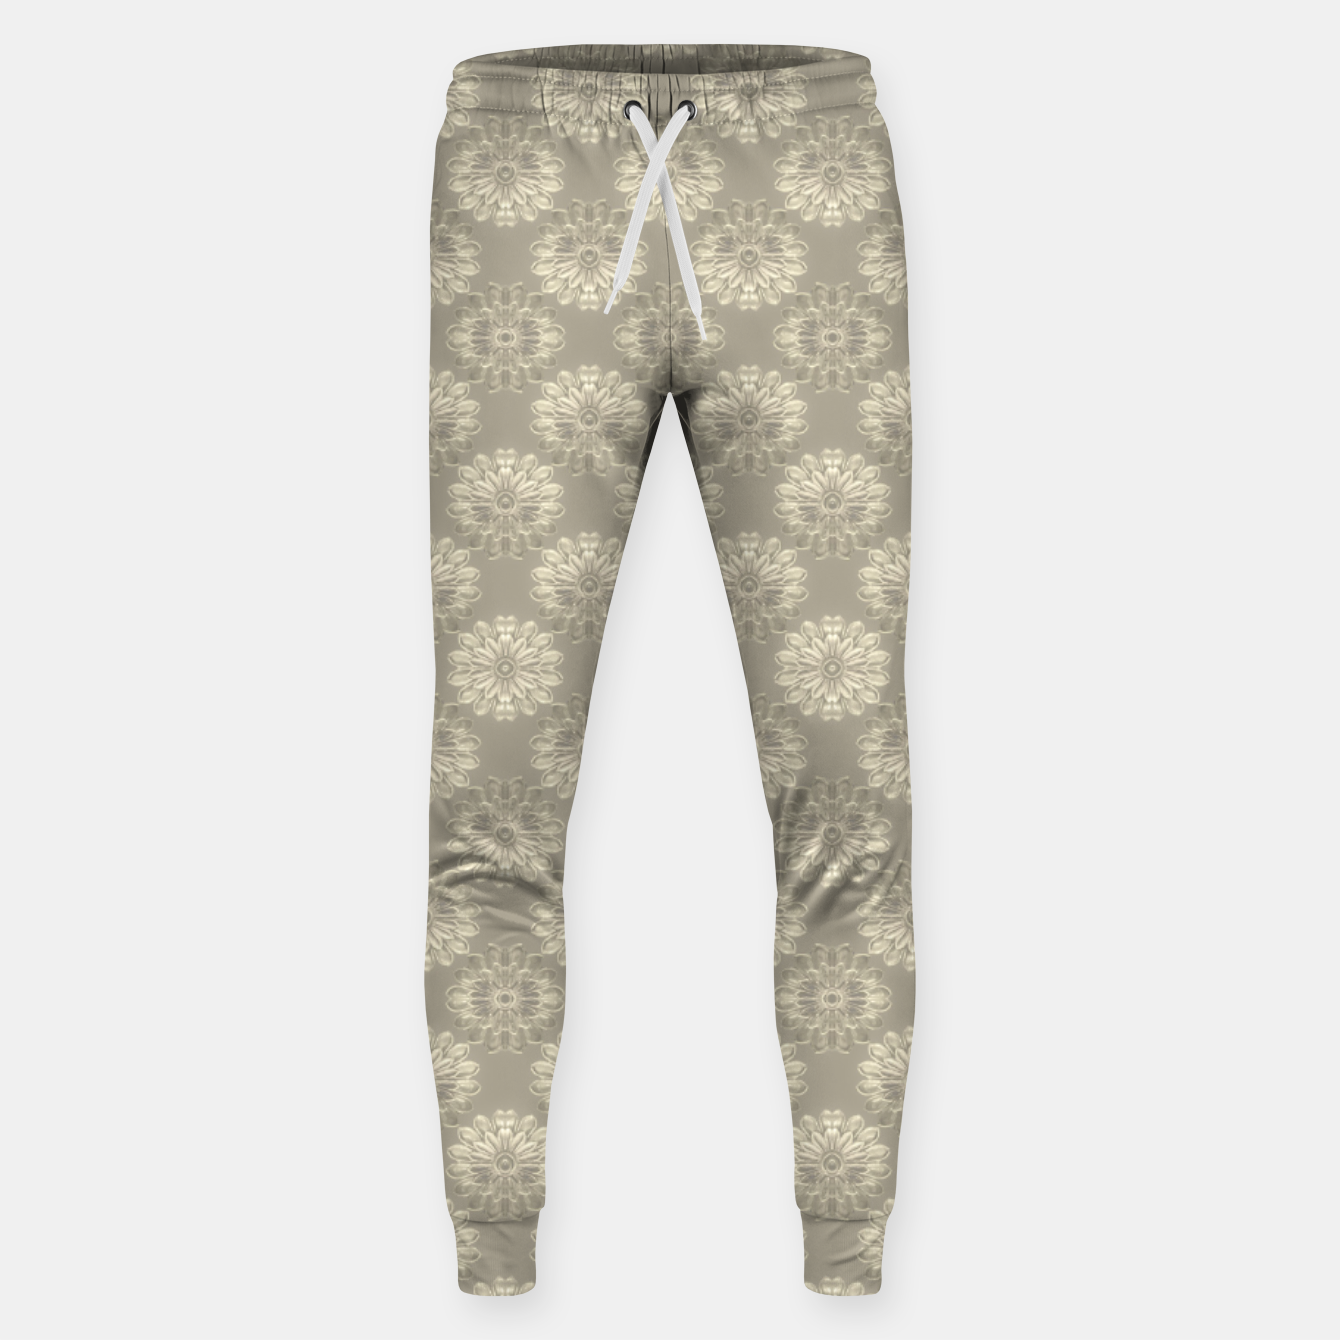 Image of Bright Silver Decorative Motif Pattern Sweatpants - Live Heroes